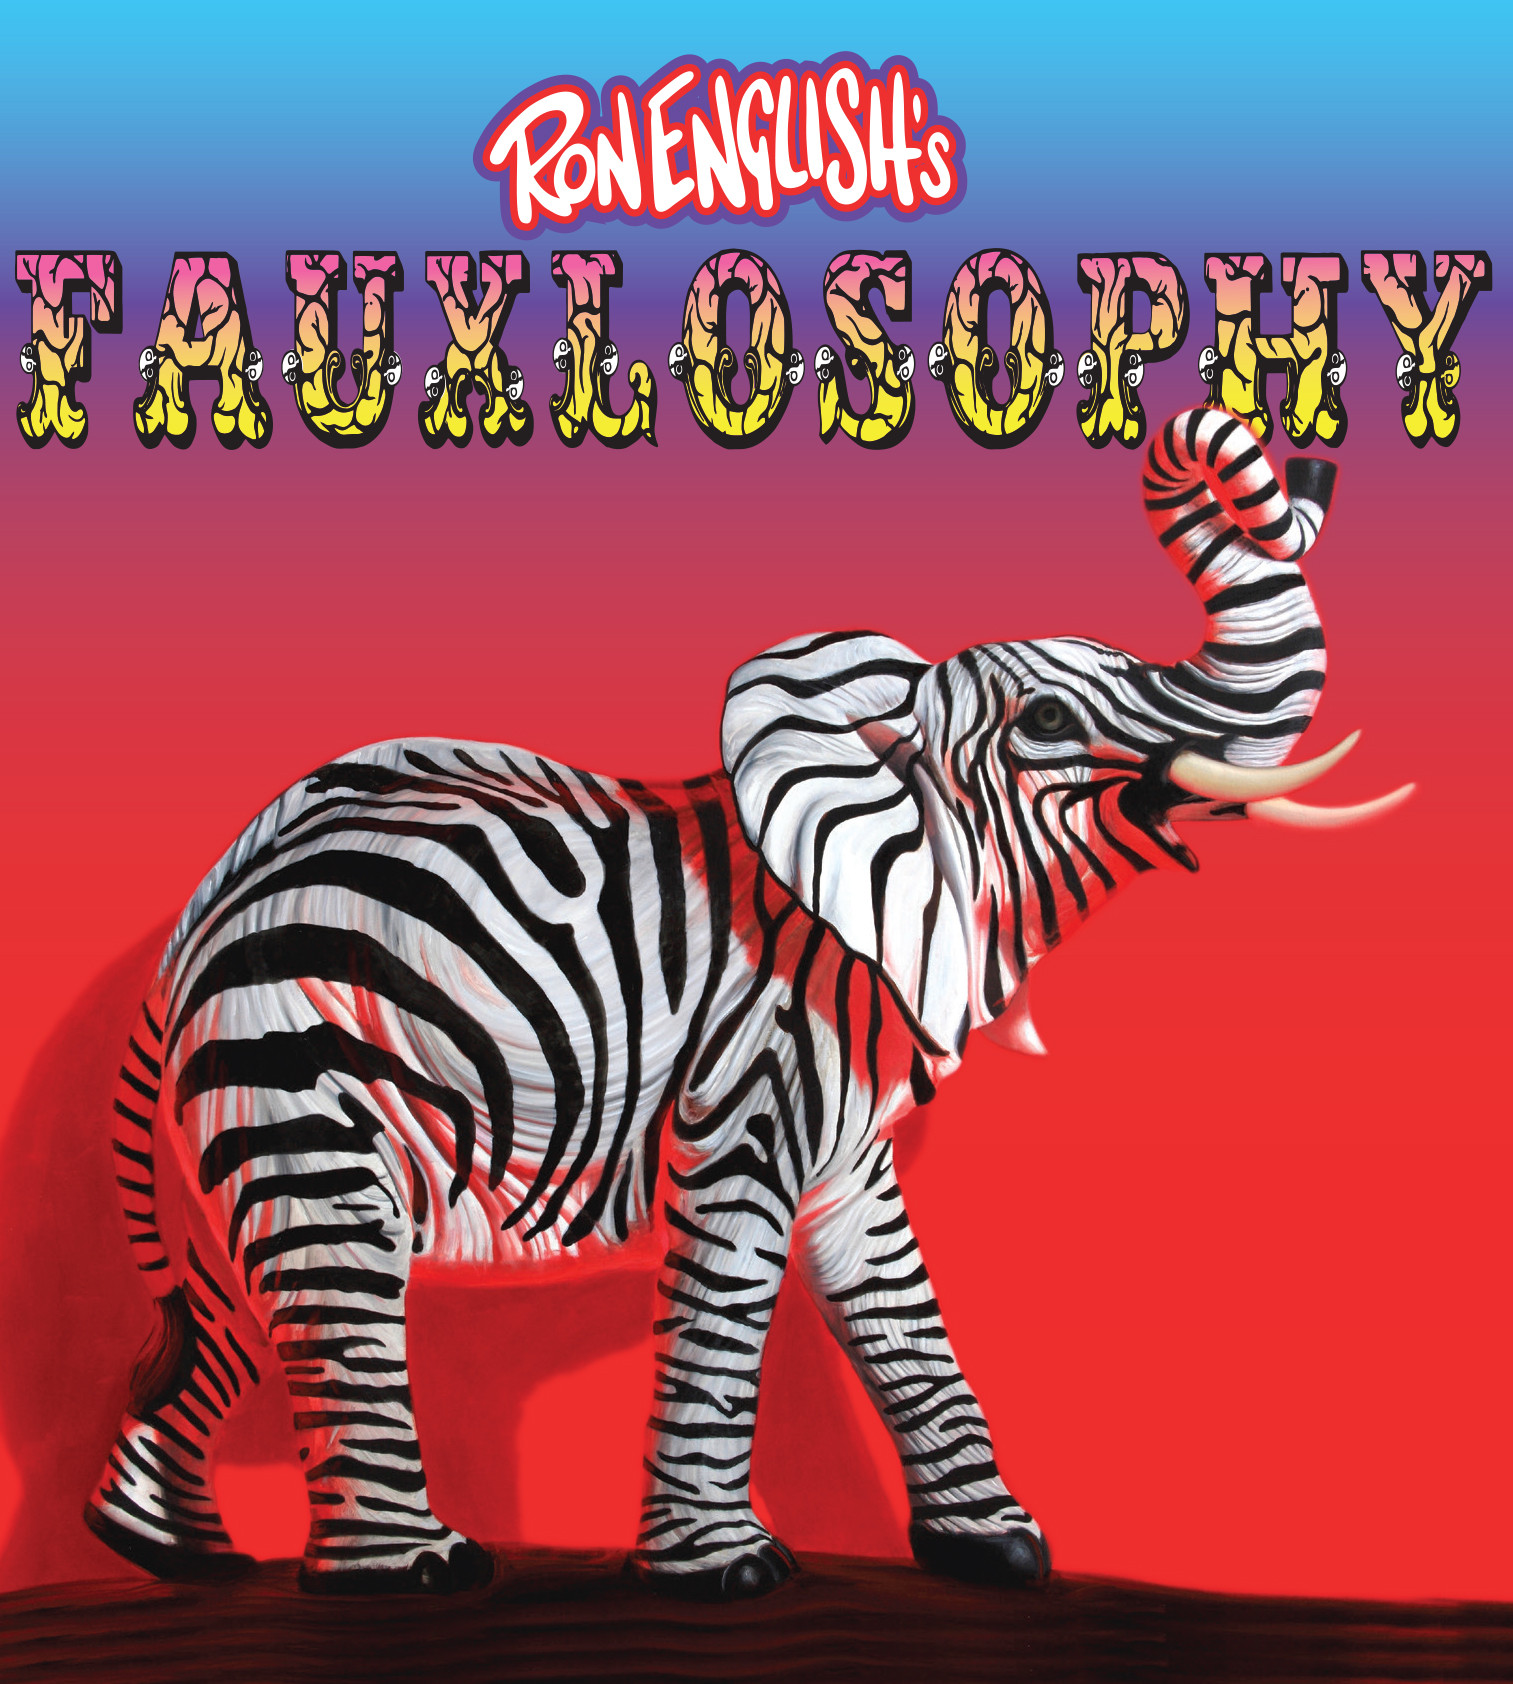 Ron English's Fauxlosophy